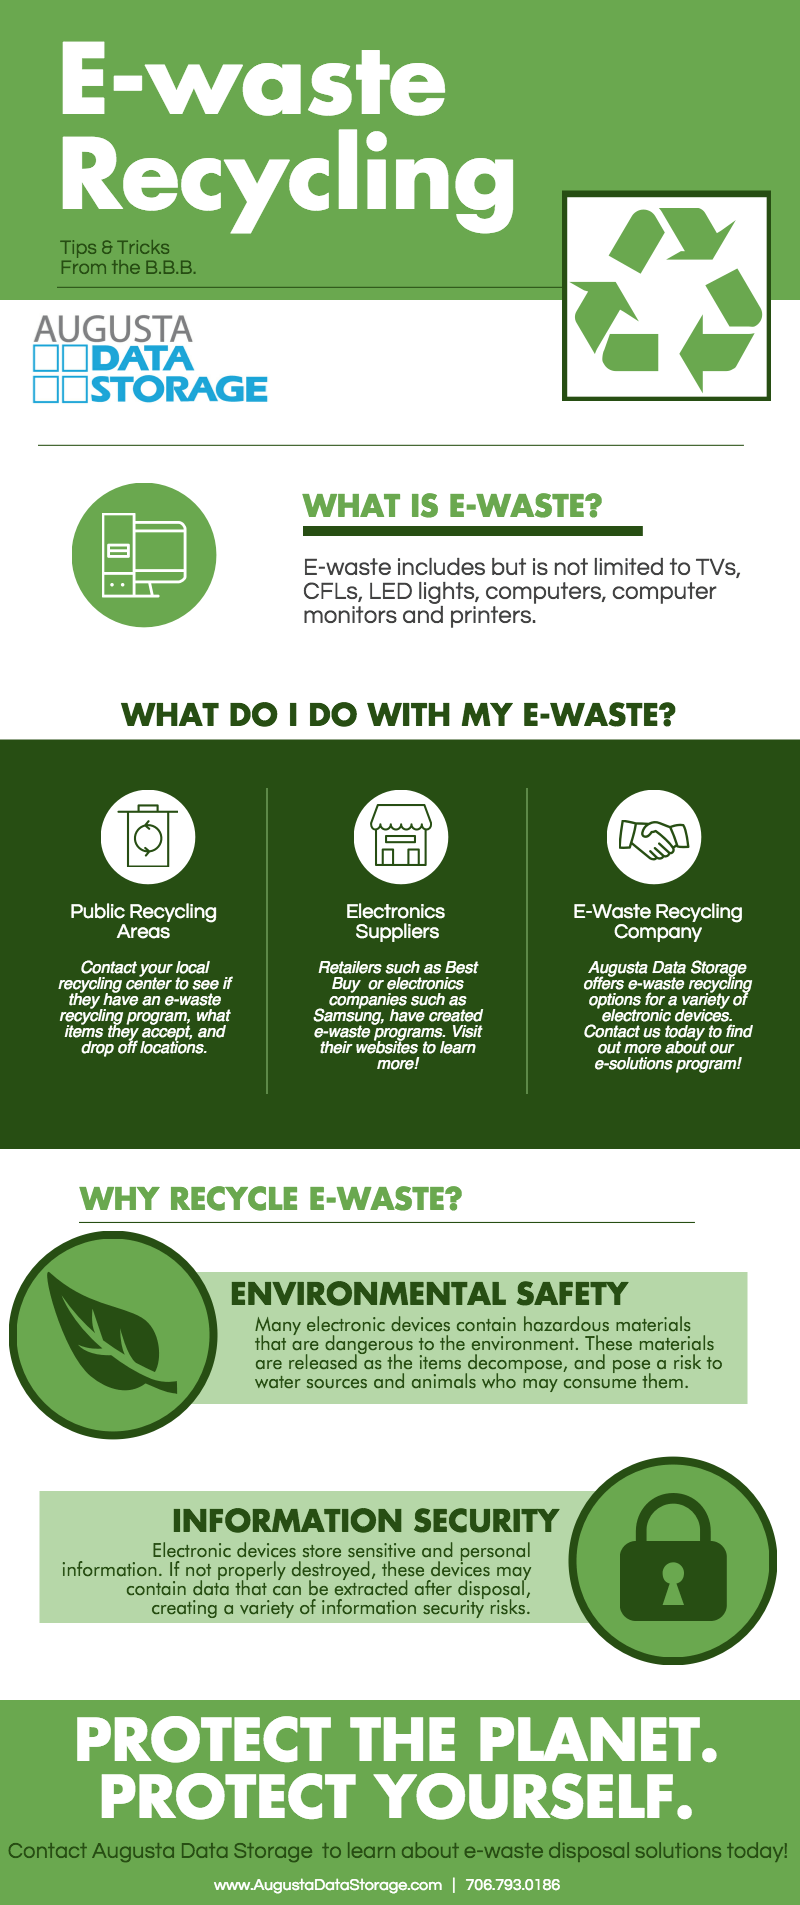 E-Waste Recycling Infographic